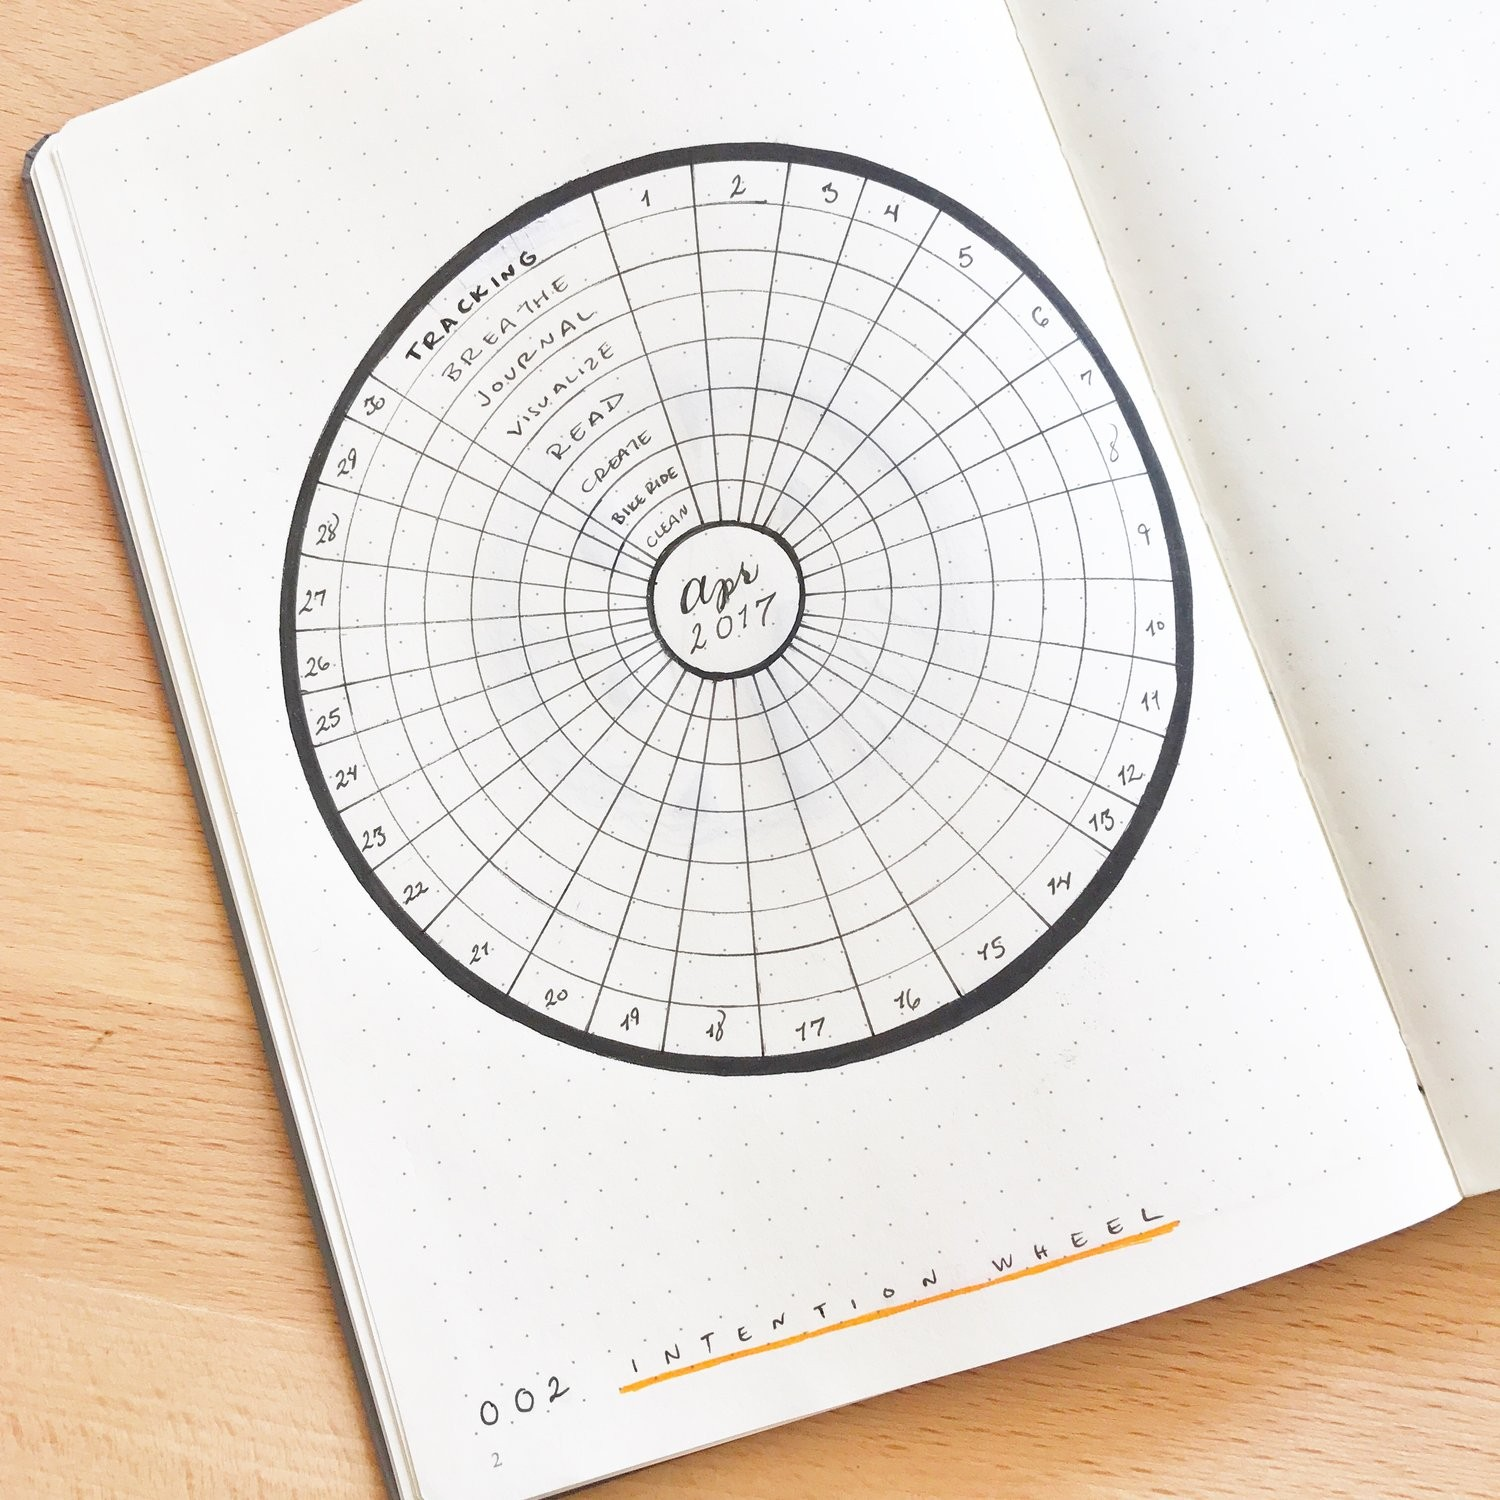 March Reading Month Calendar Activities Más Recientemente Liberado the Intention Wheel A New Kind Of Tracker for Your Bullet Journal Of March Reading Month Calendar Activities Más Populares Old Style and New Style Dates